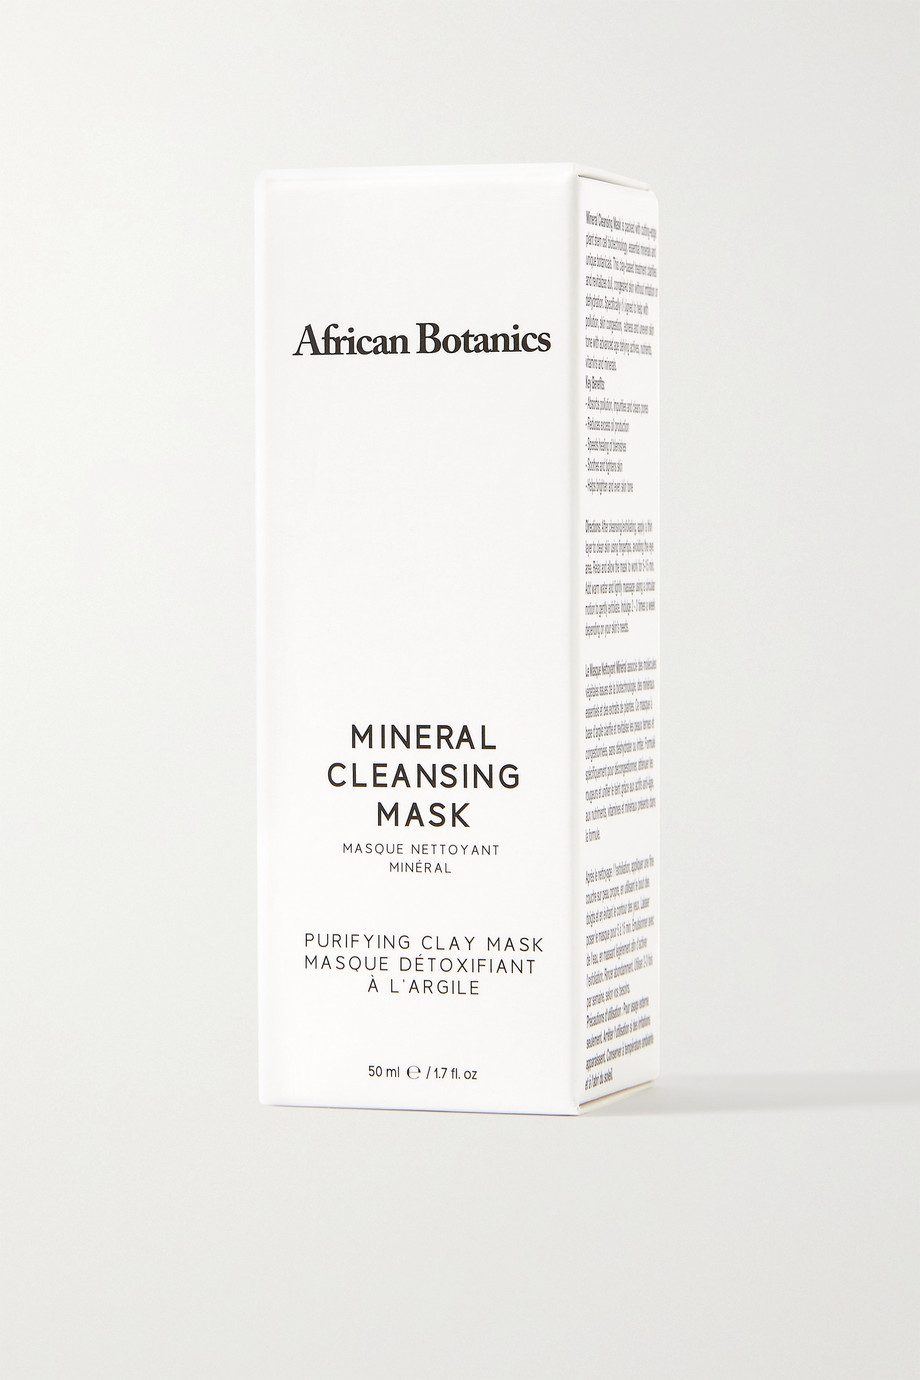 African Botanics Marula Mineral Cleansing Mask, 60ml